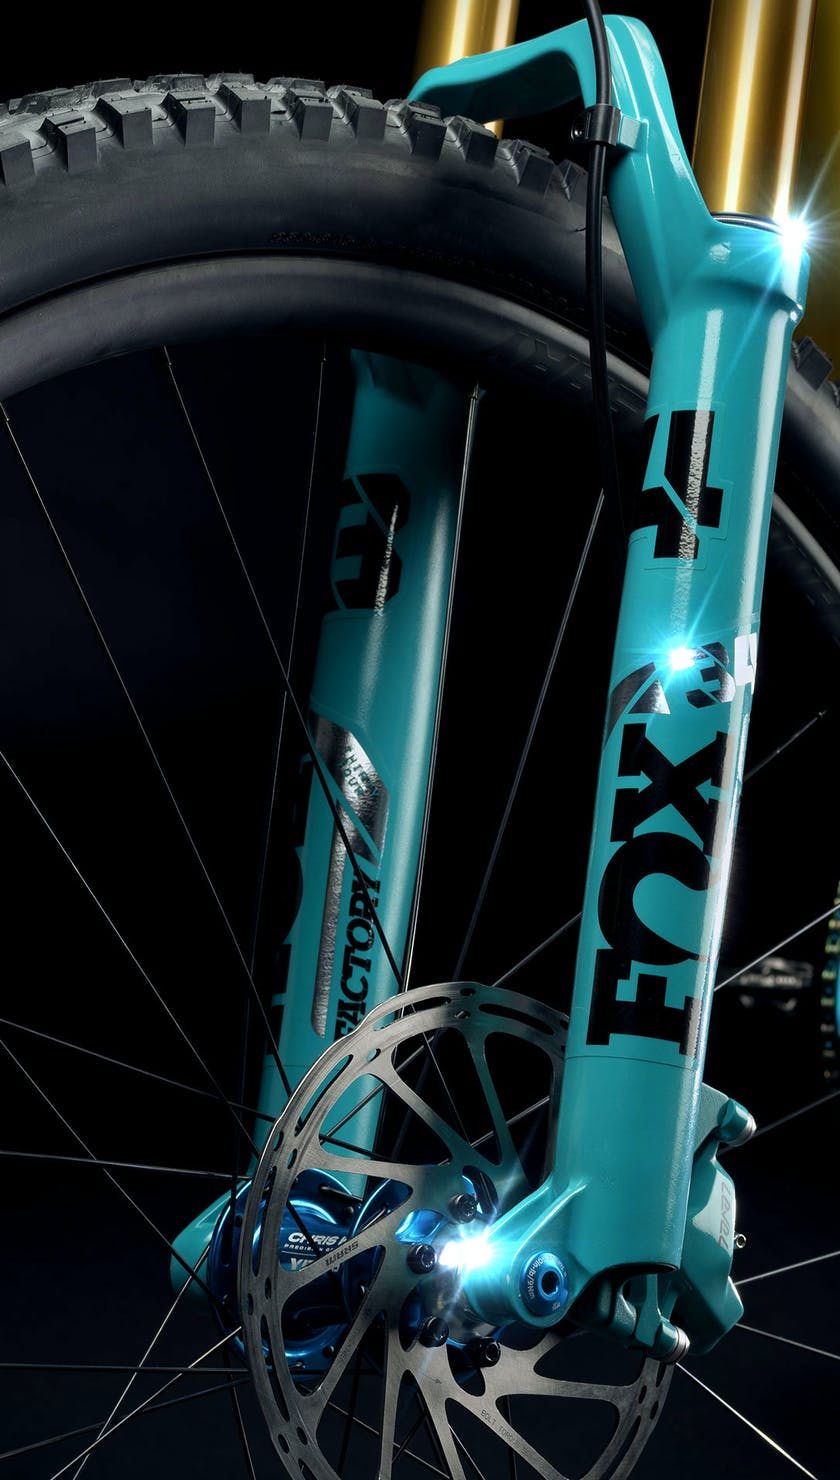 ARC 35th Anniversary Fork Image